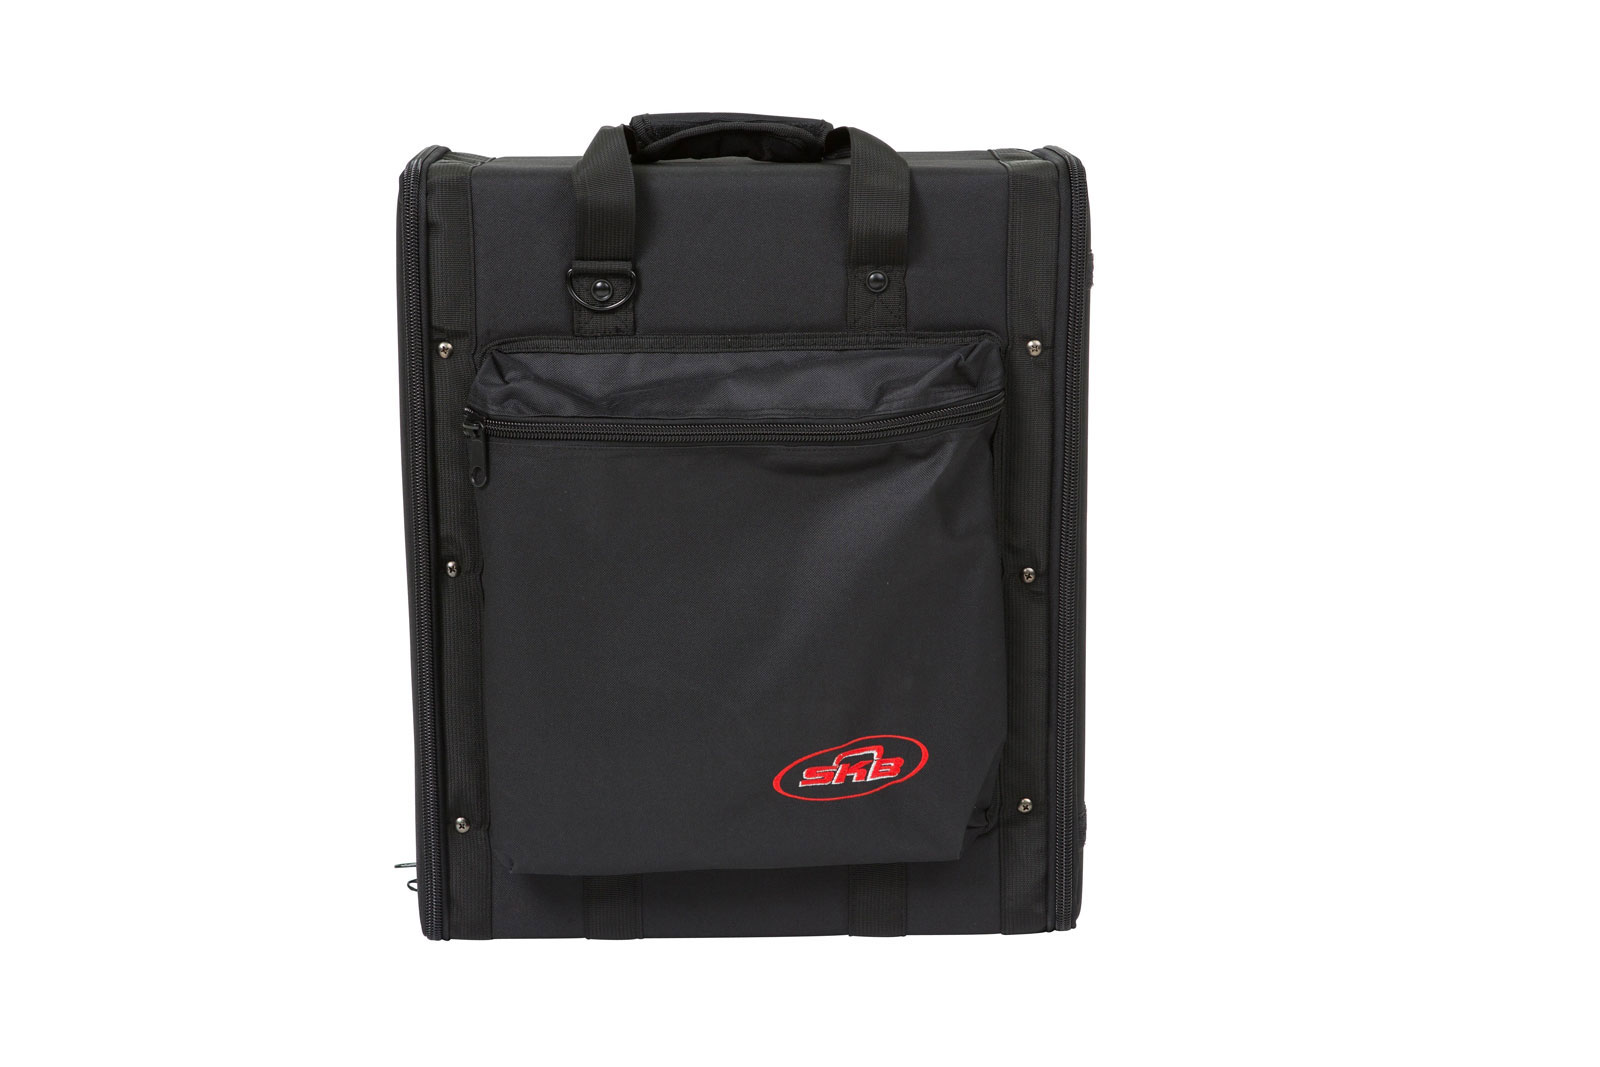 MUSIC MUSICAL RACK PRODUCTS SOFT RACKS 1SKB-SC193U BLACK